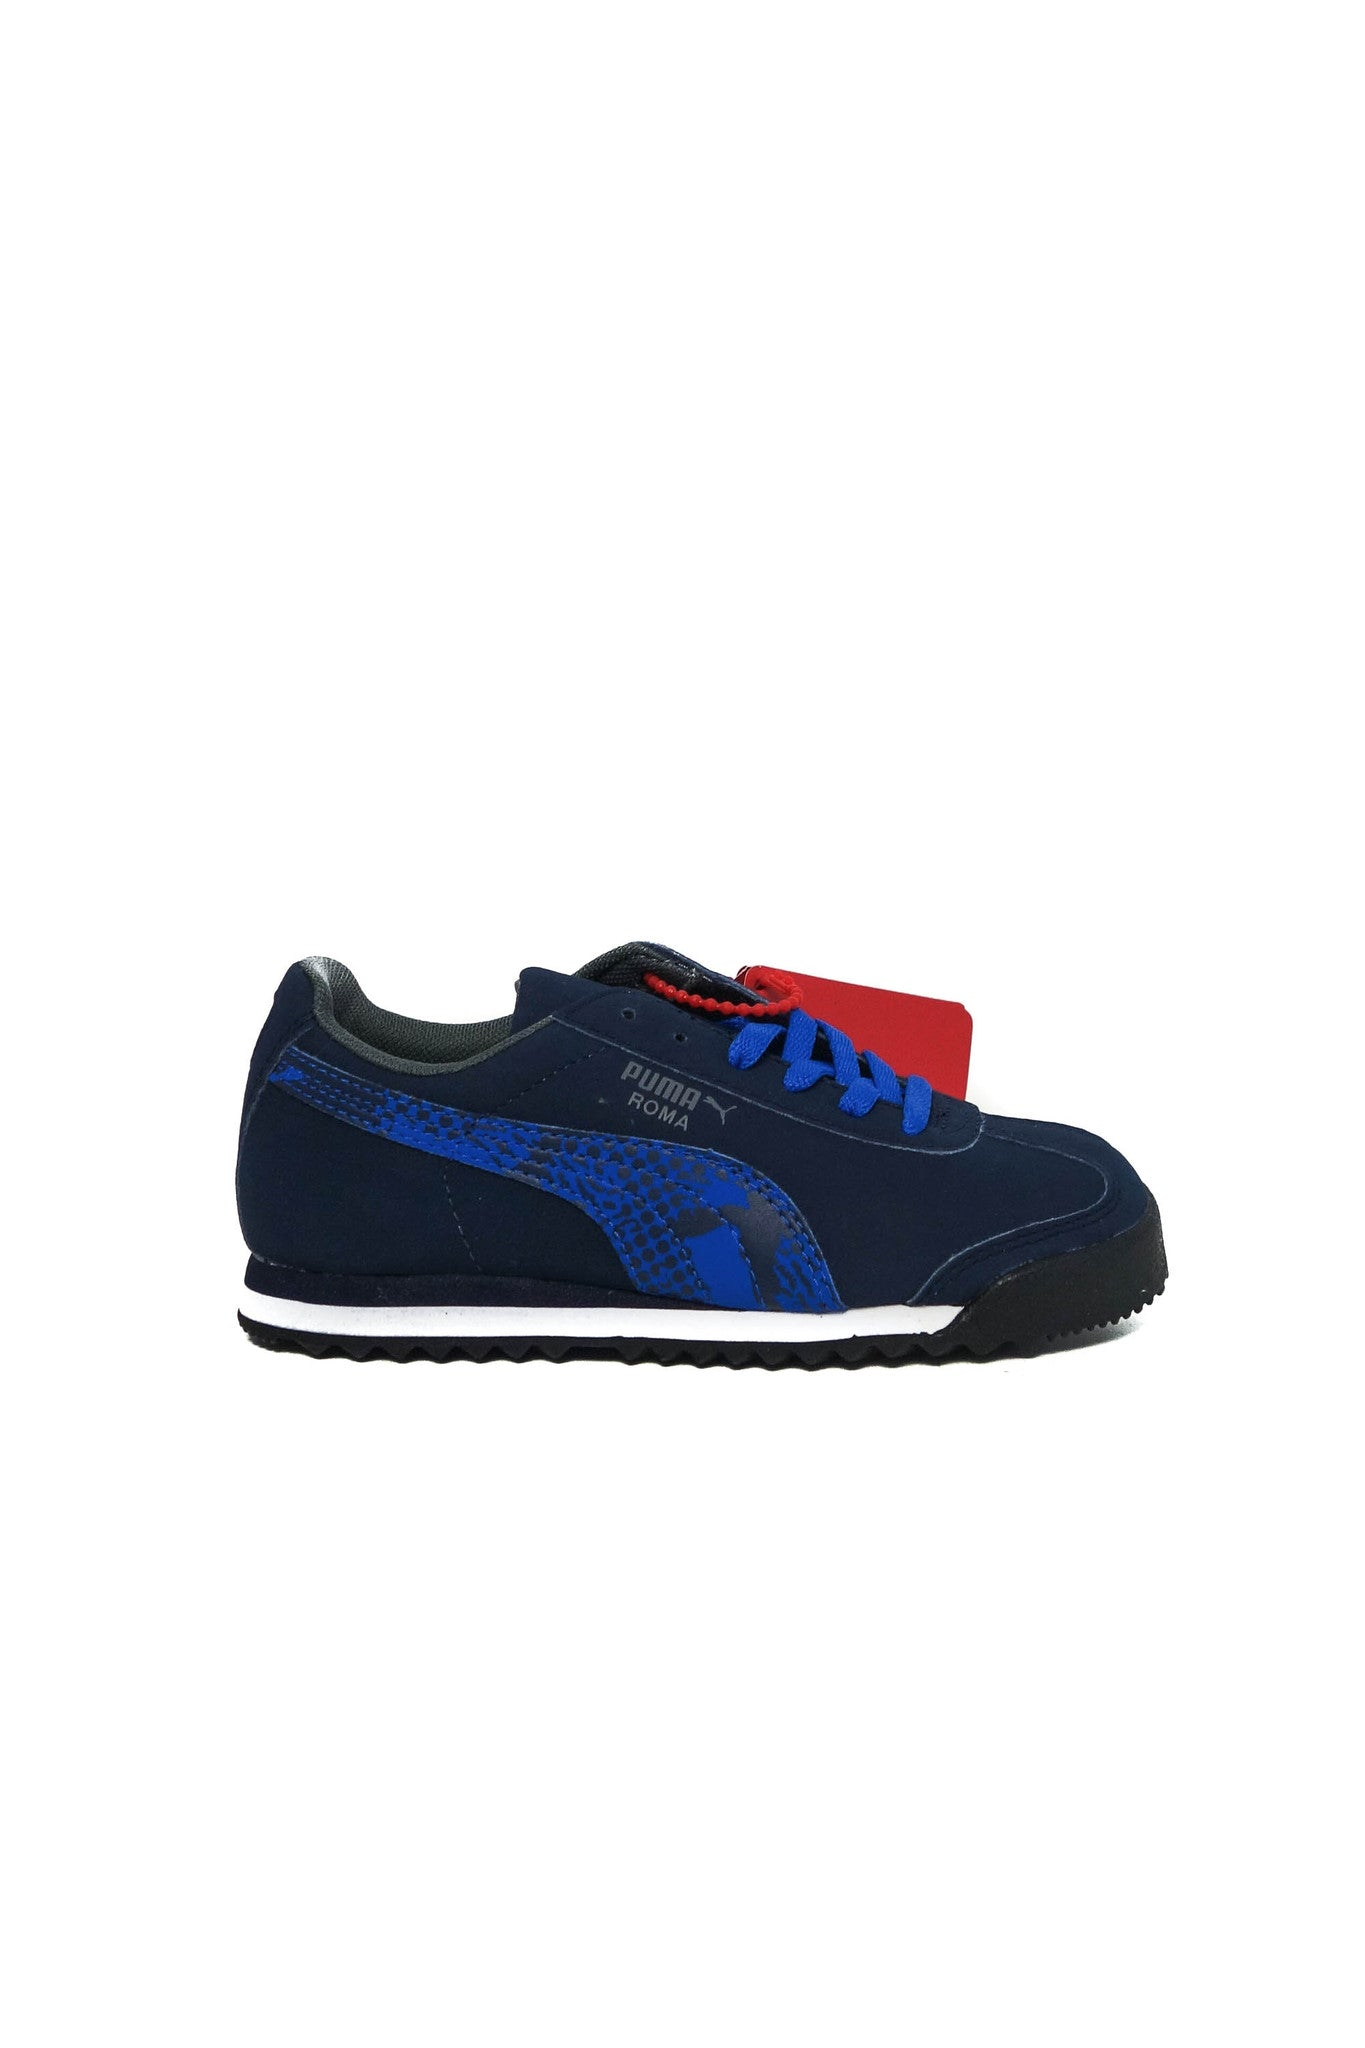 10003134 Puma Kids~Shoes 6T (EU 31) at Retykle